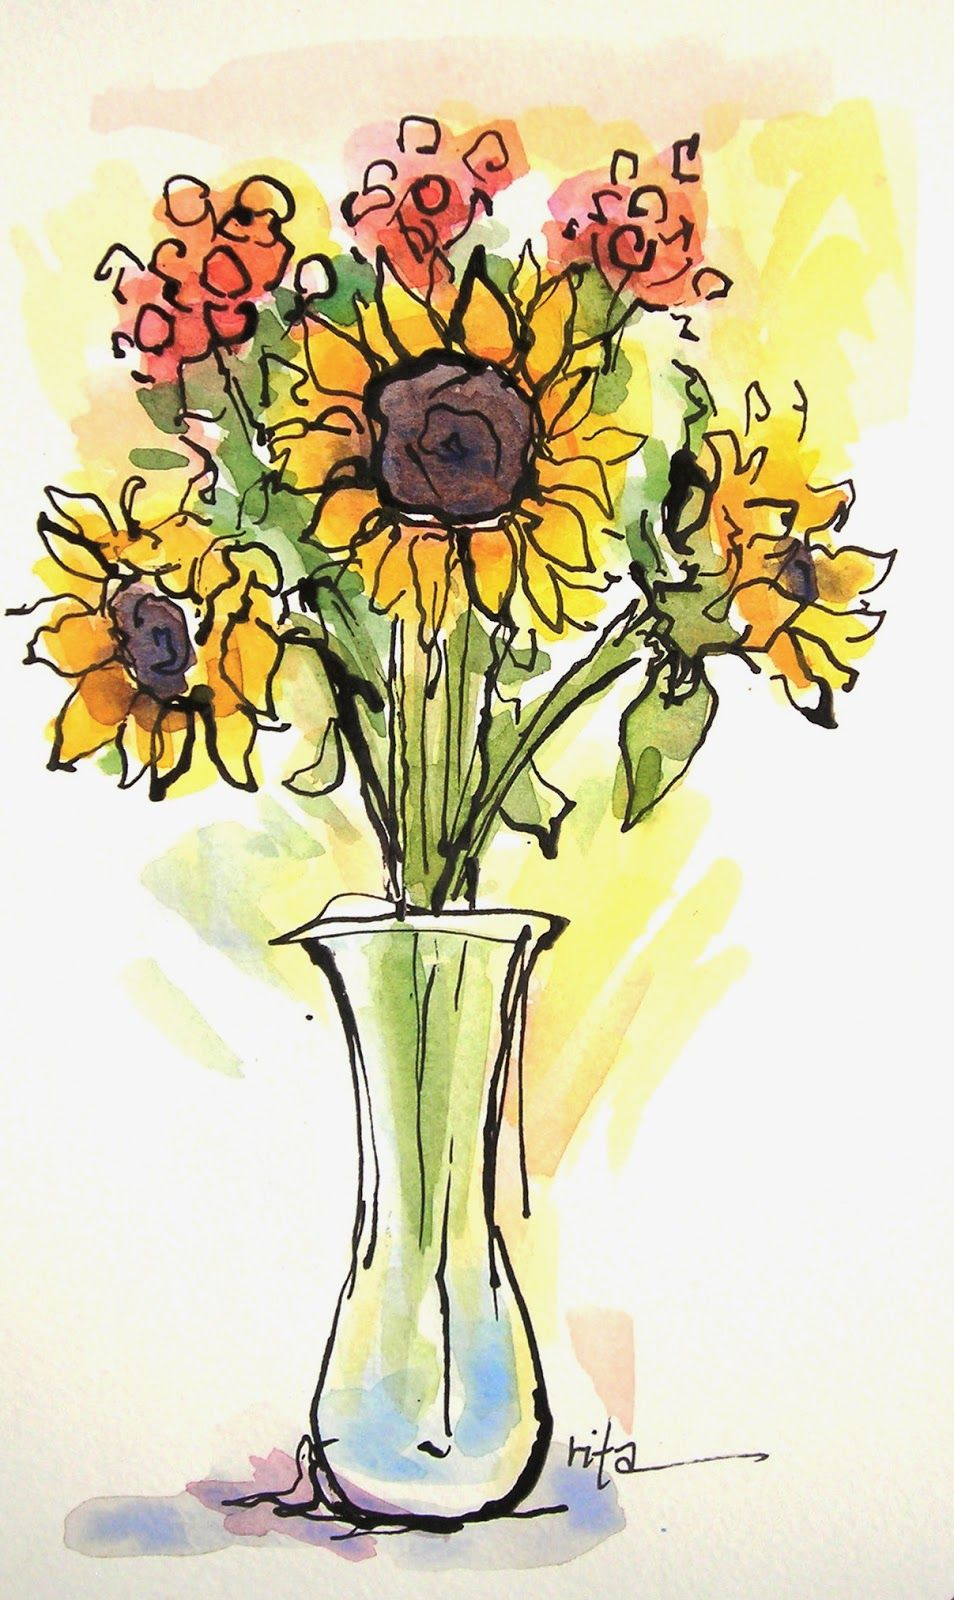 Simple painting idea with sunflowers in a vase. Add some